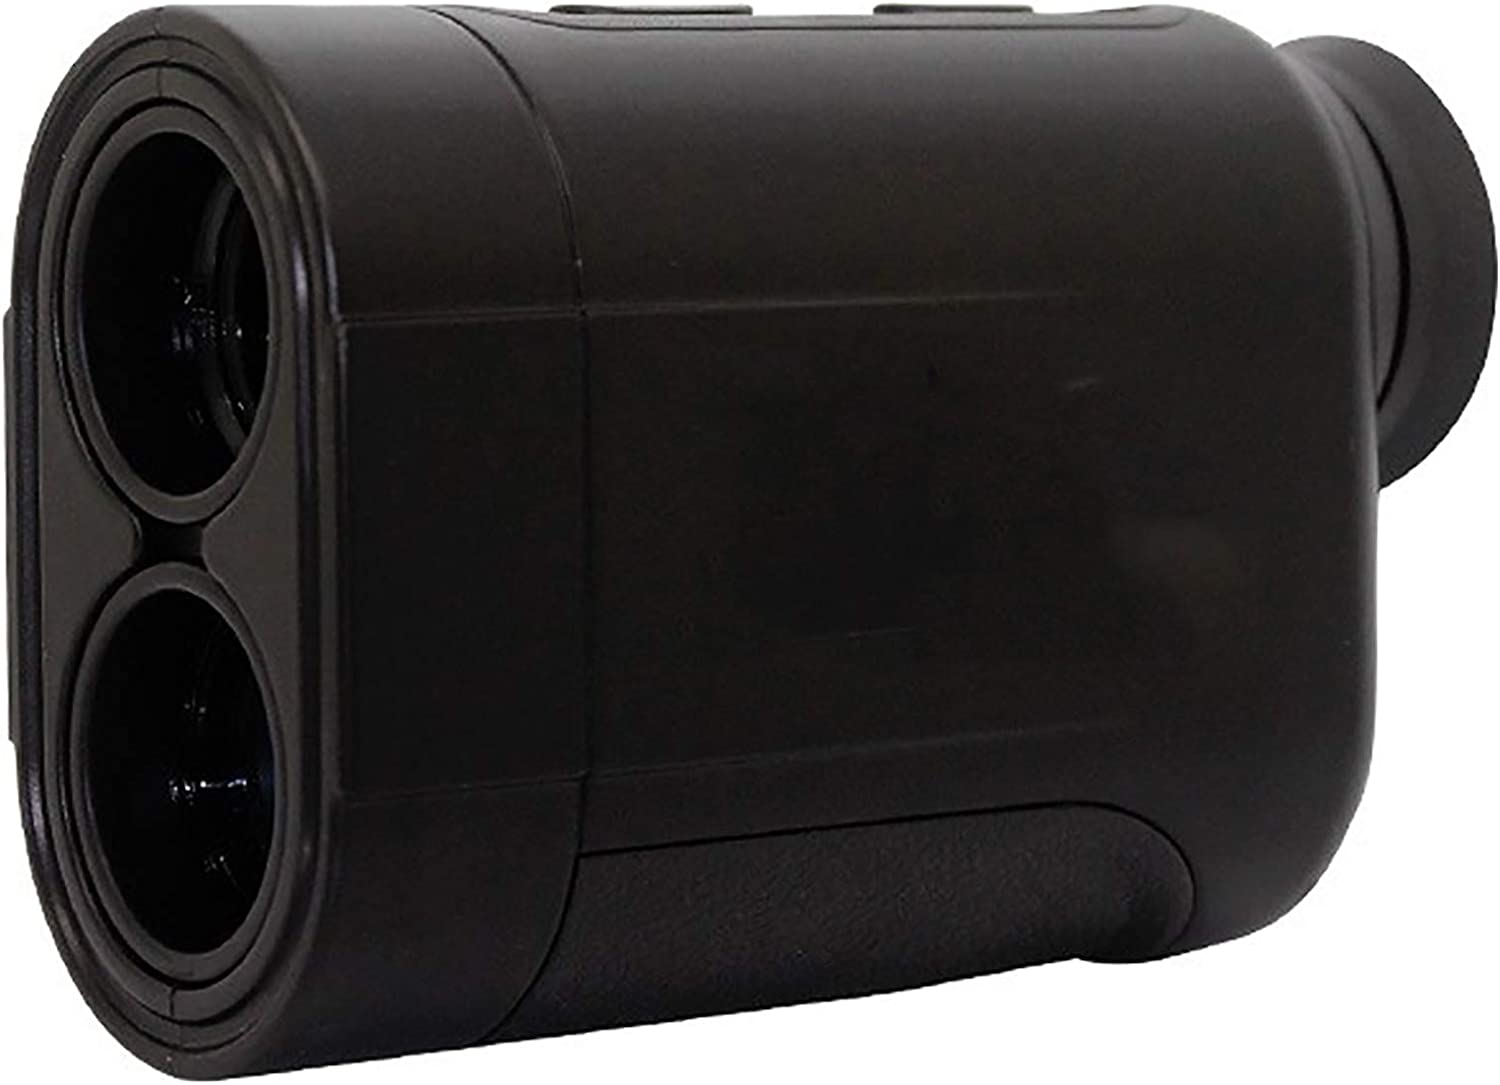 LIUHUI Golf Rangefinder with Slope Off Lowest Max 85% OFF price challenge wit 1500m On